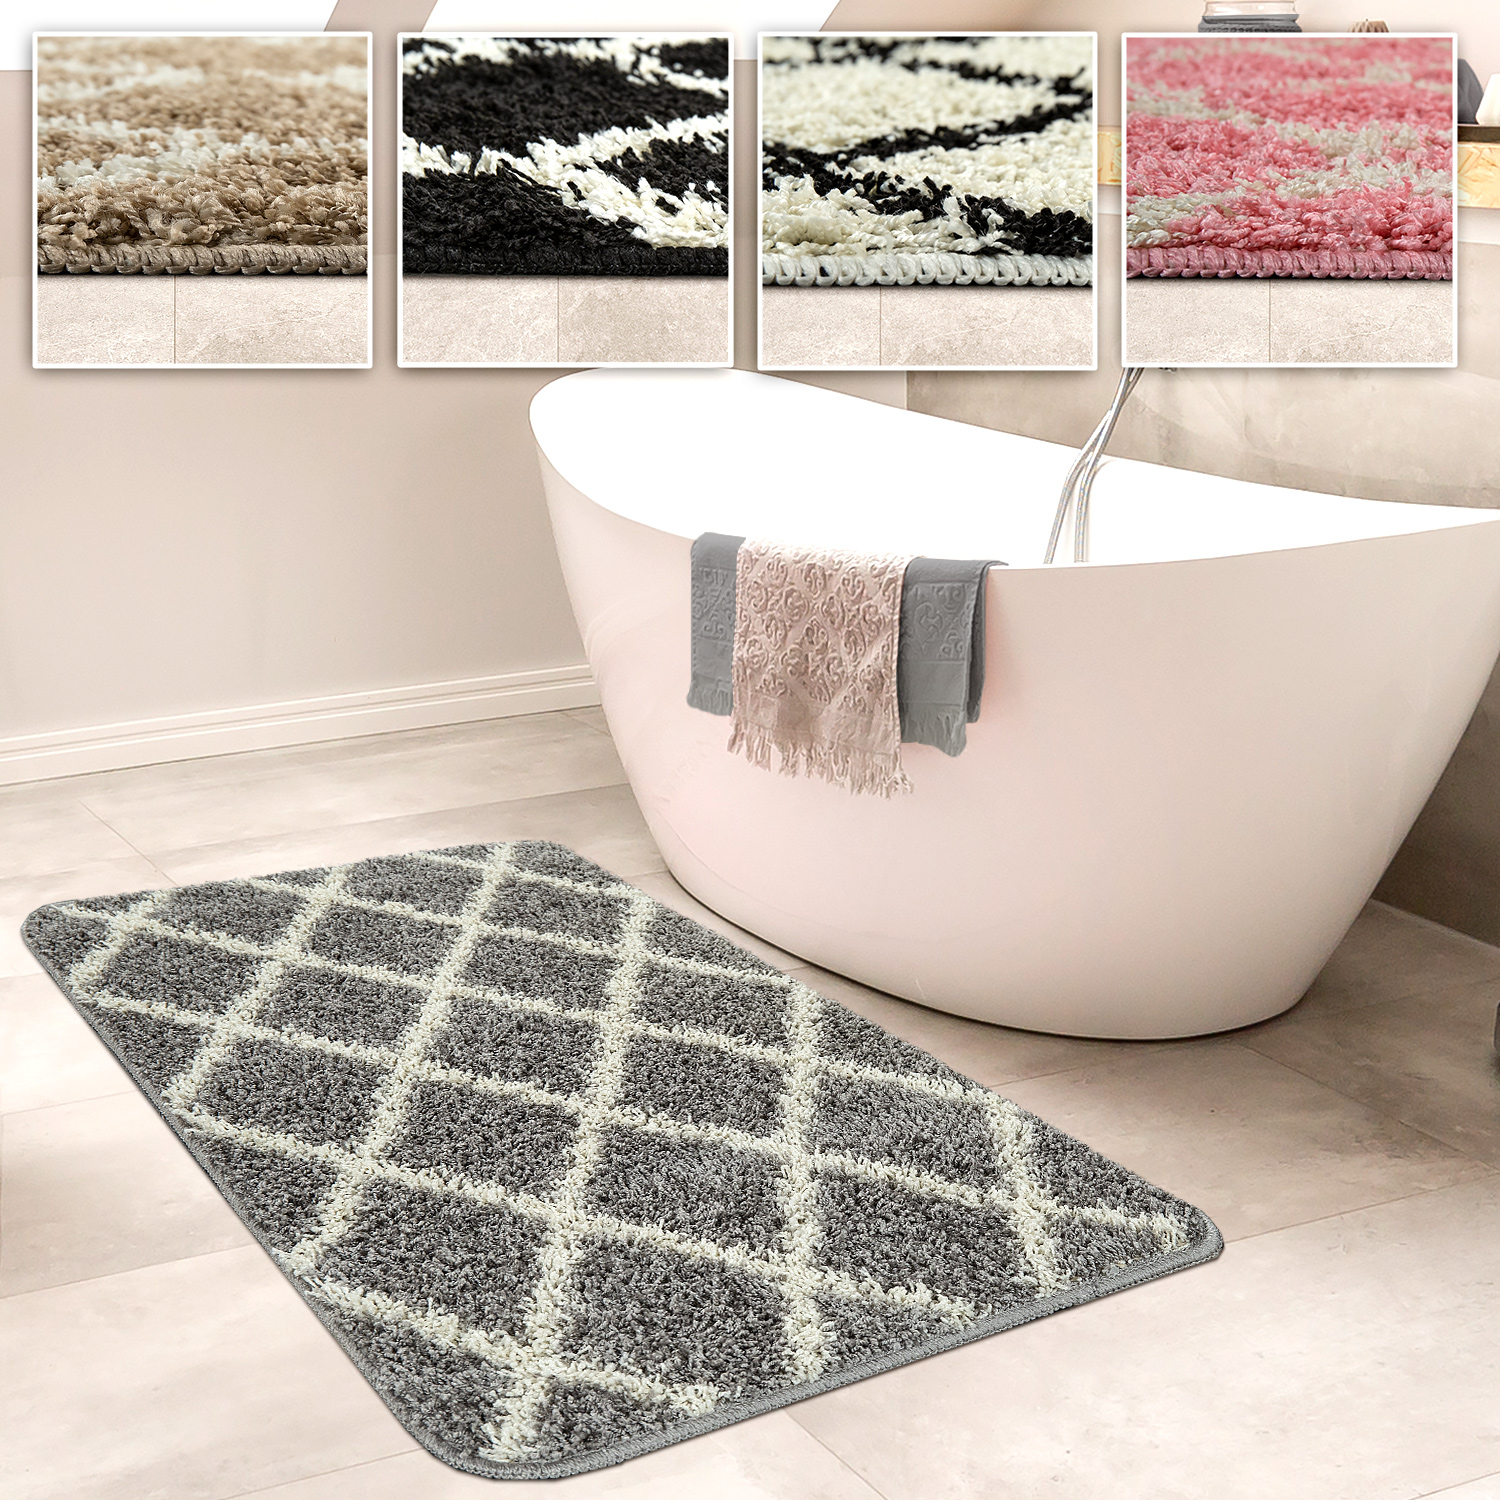 Bathmat With Diamond Design Deep-Pile Bathroom Mat In Various Sizes And Colours